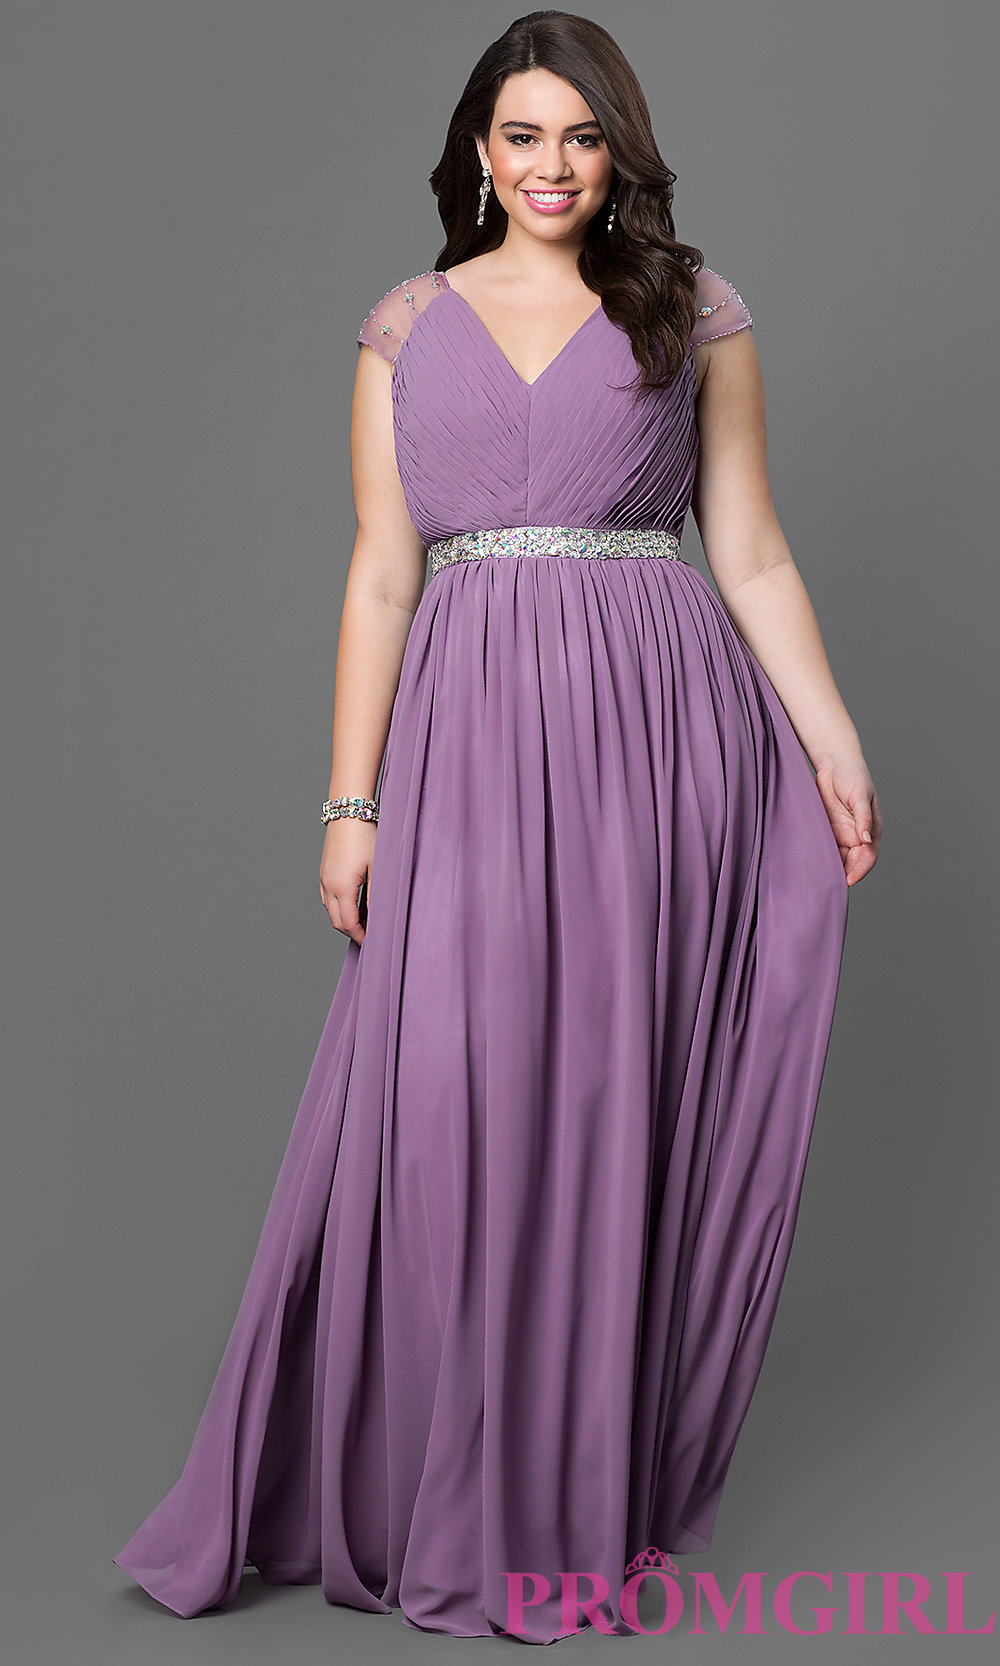 Plus Size Prom Dresses Store - Discount Evening Dresses